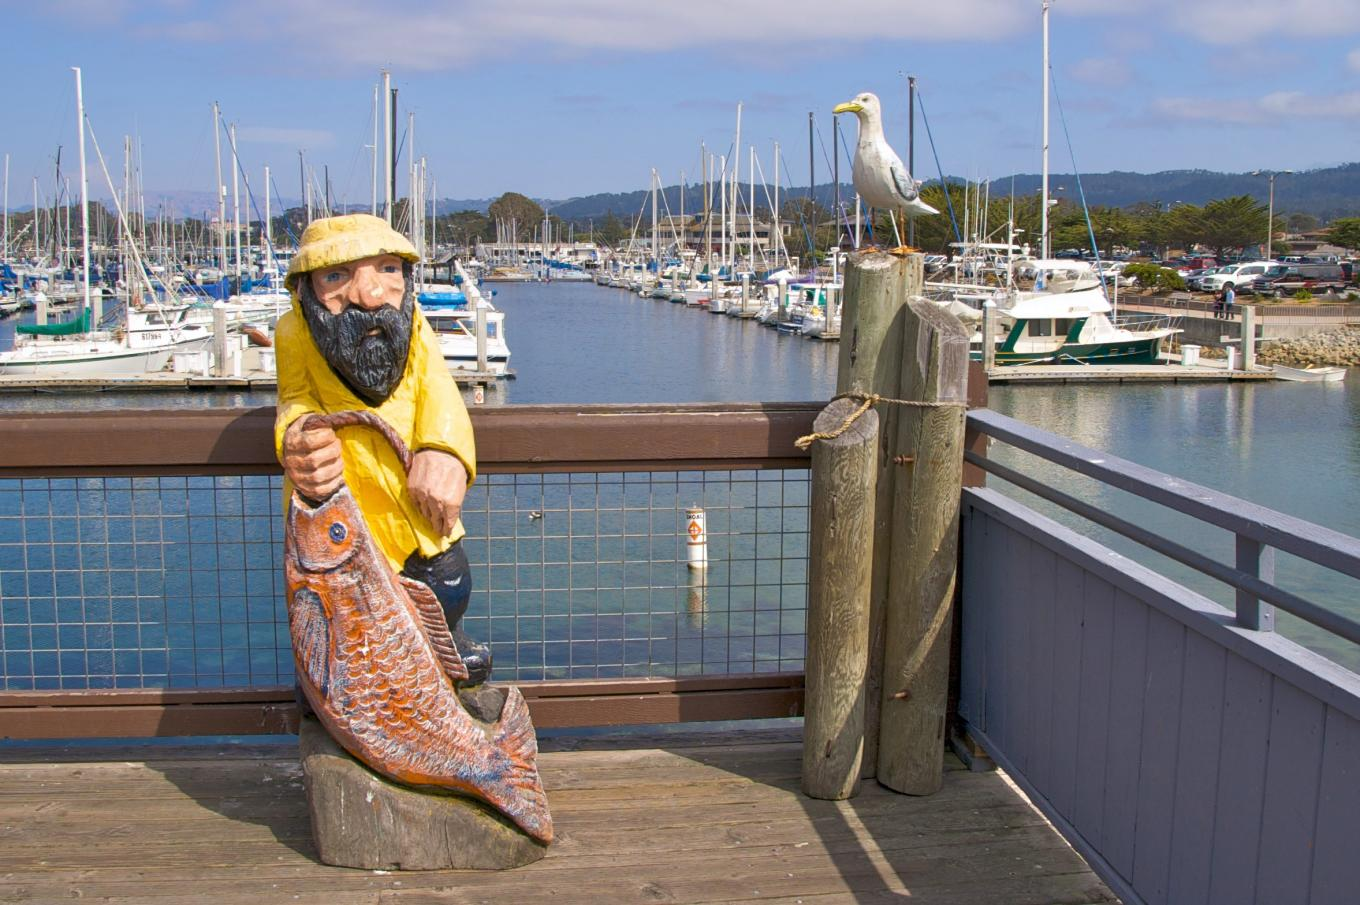 Fisherman Statue on Wharf